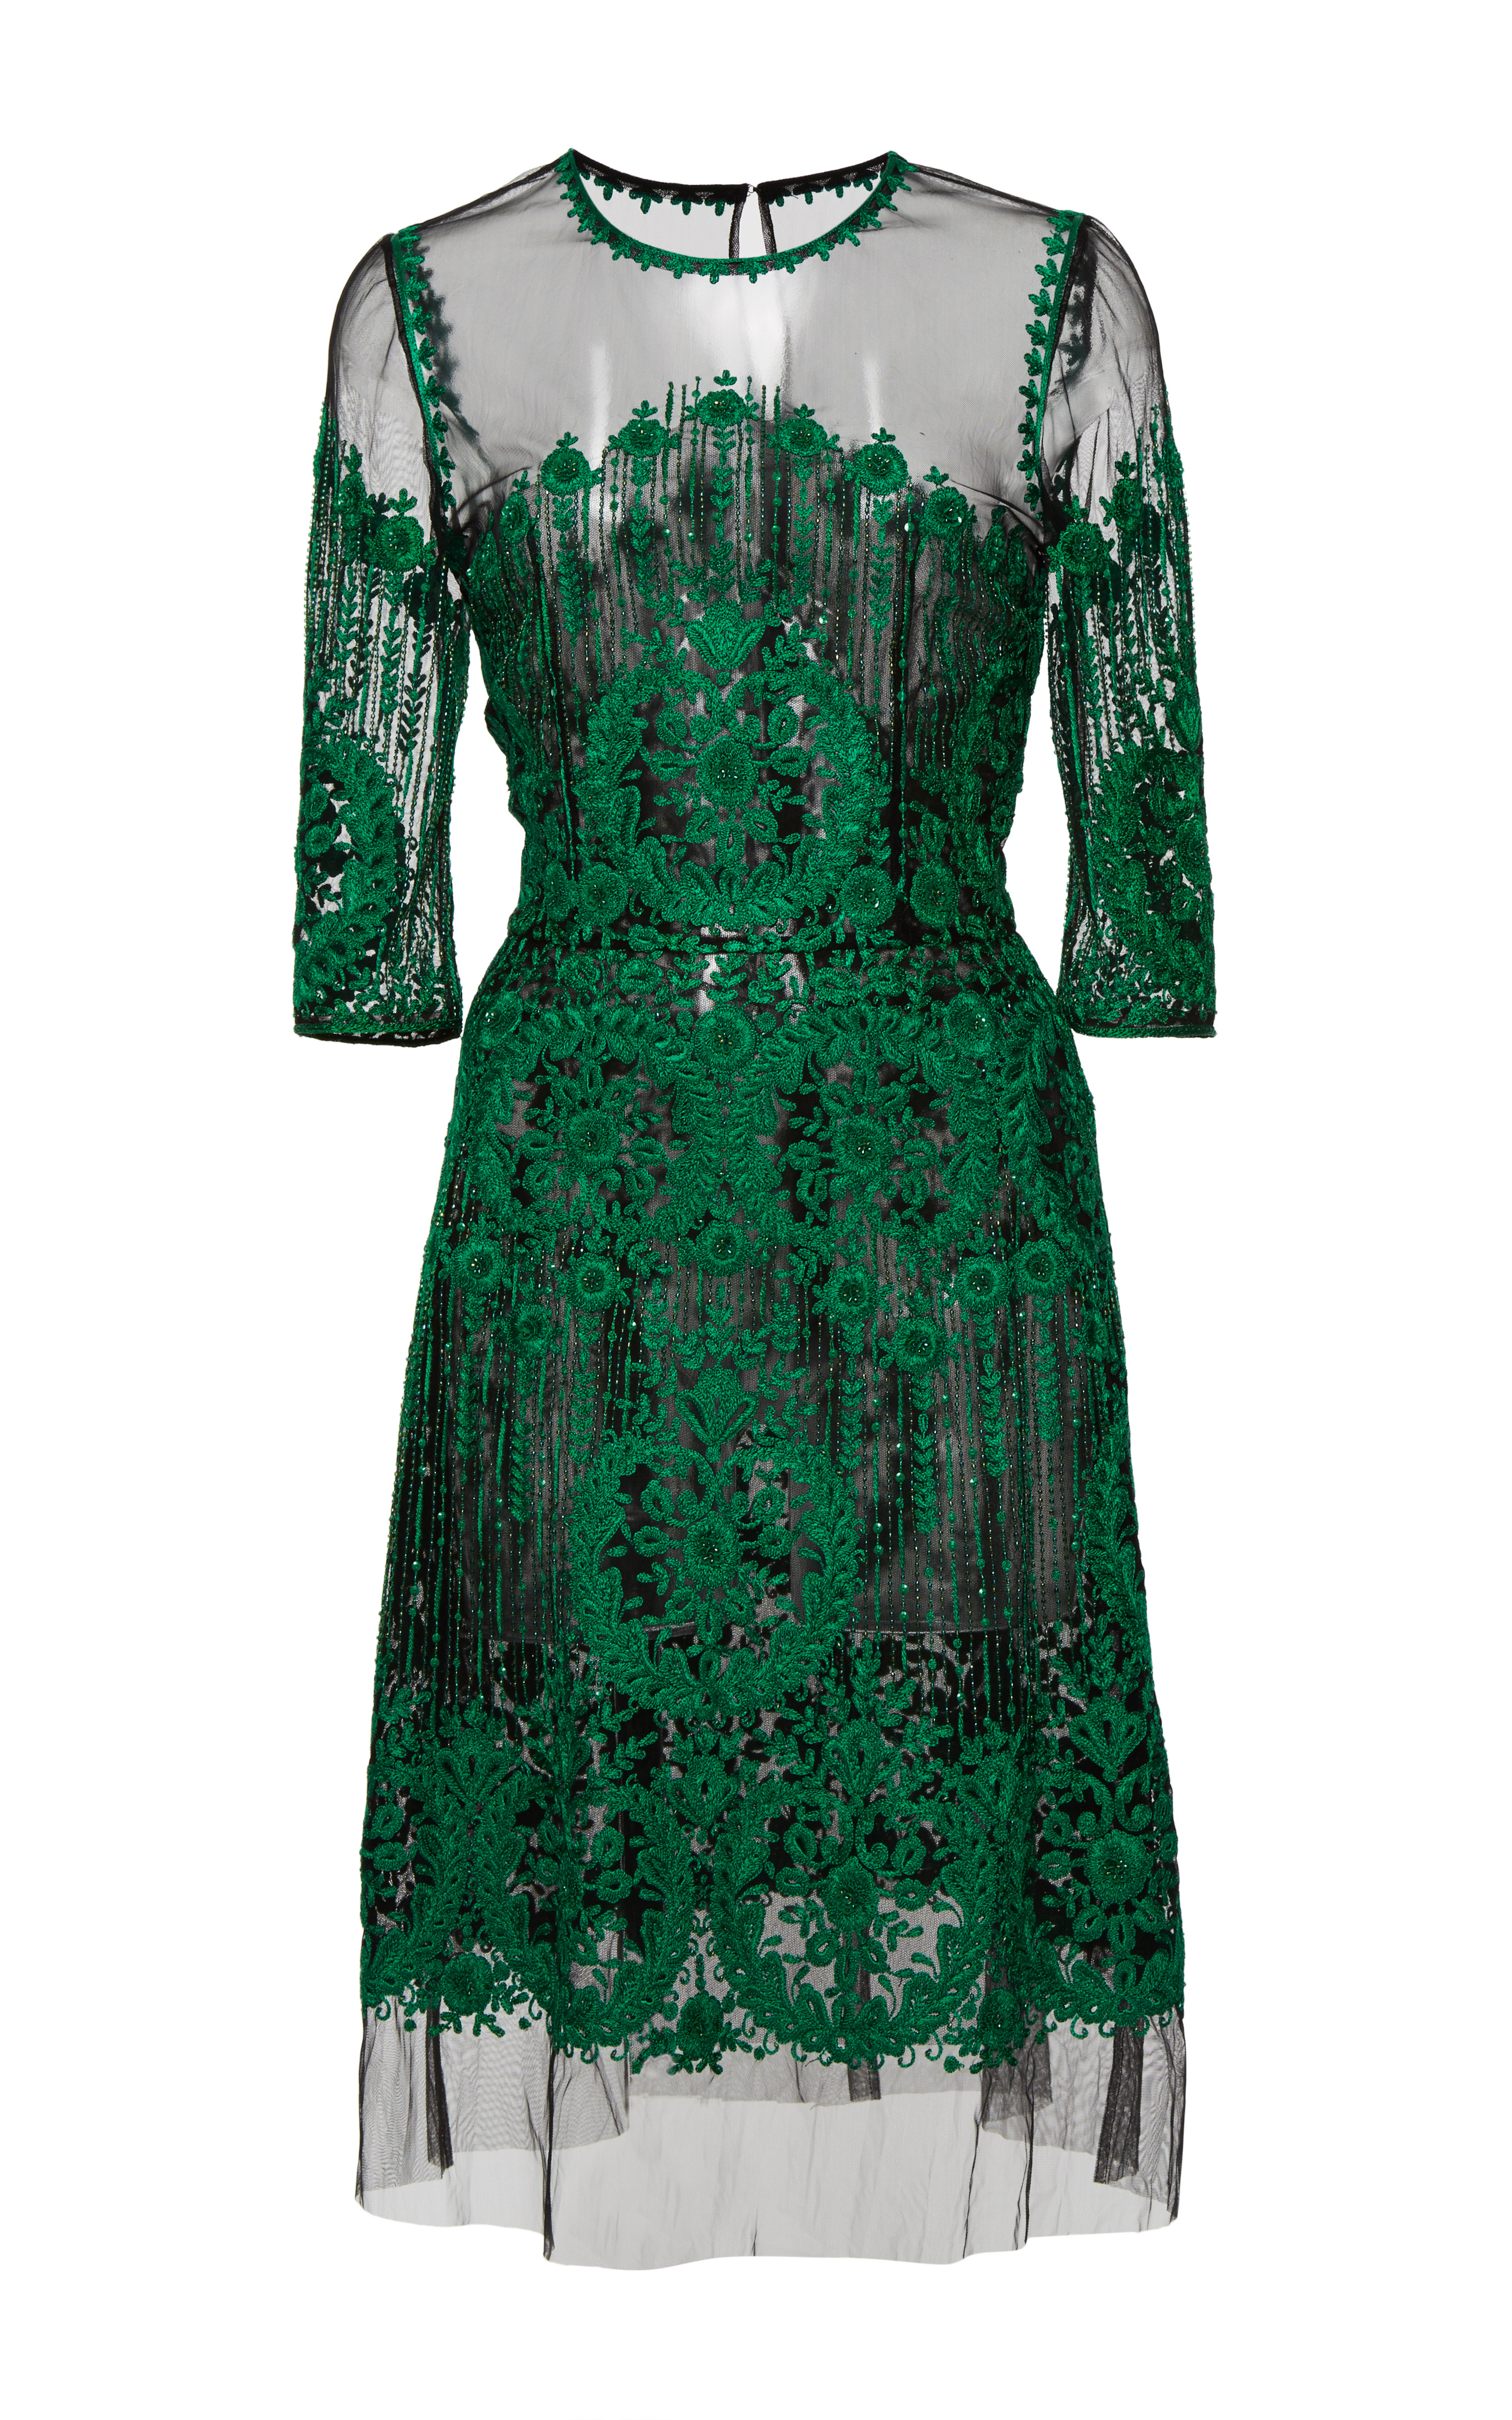 Embroidered dress by naeem khan